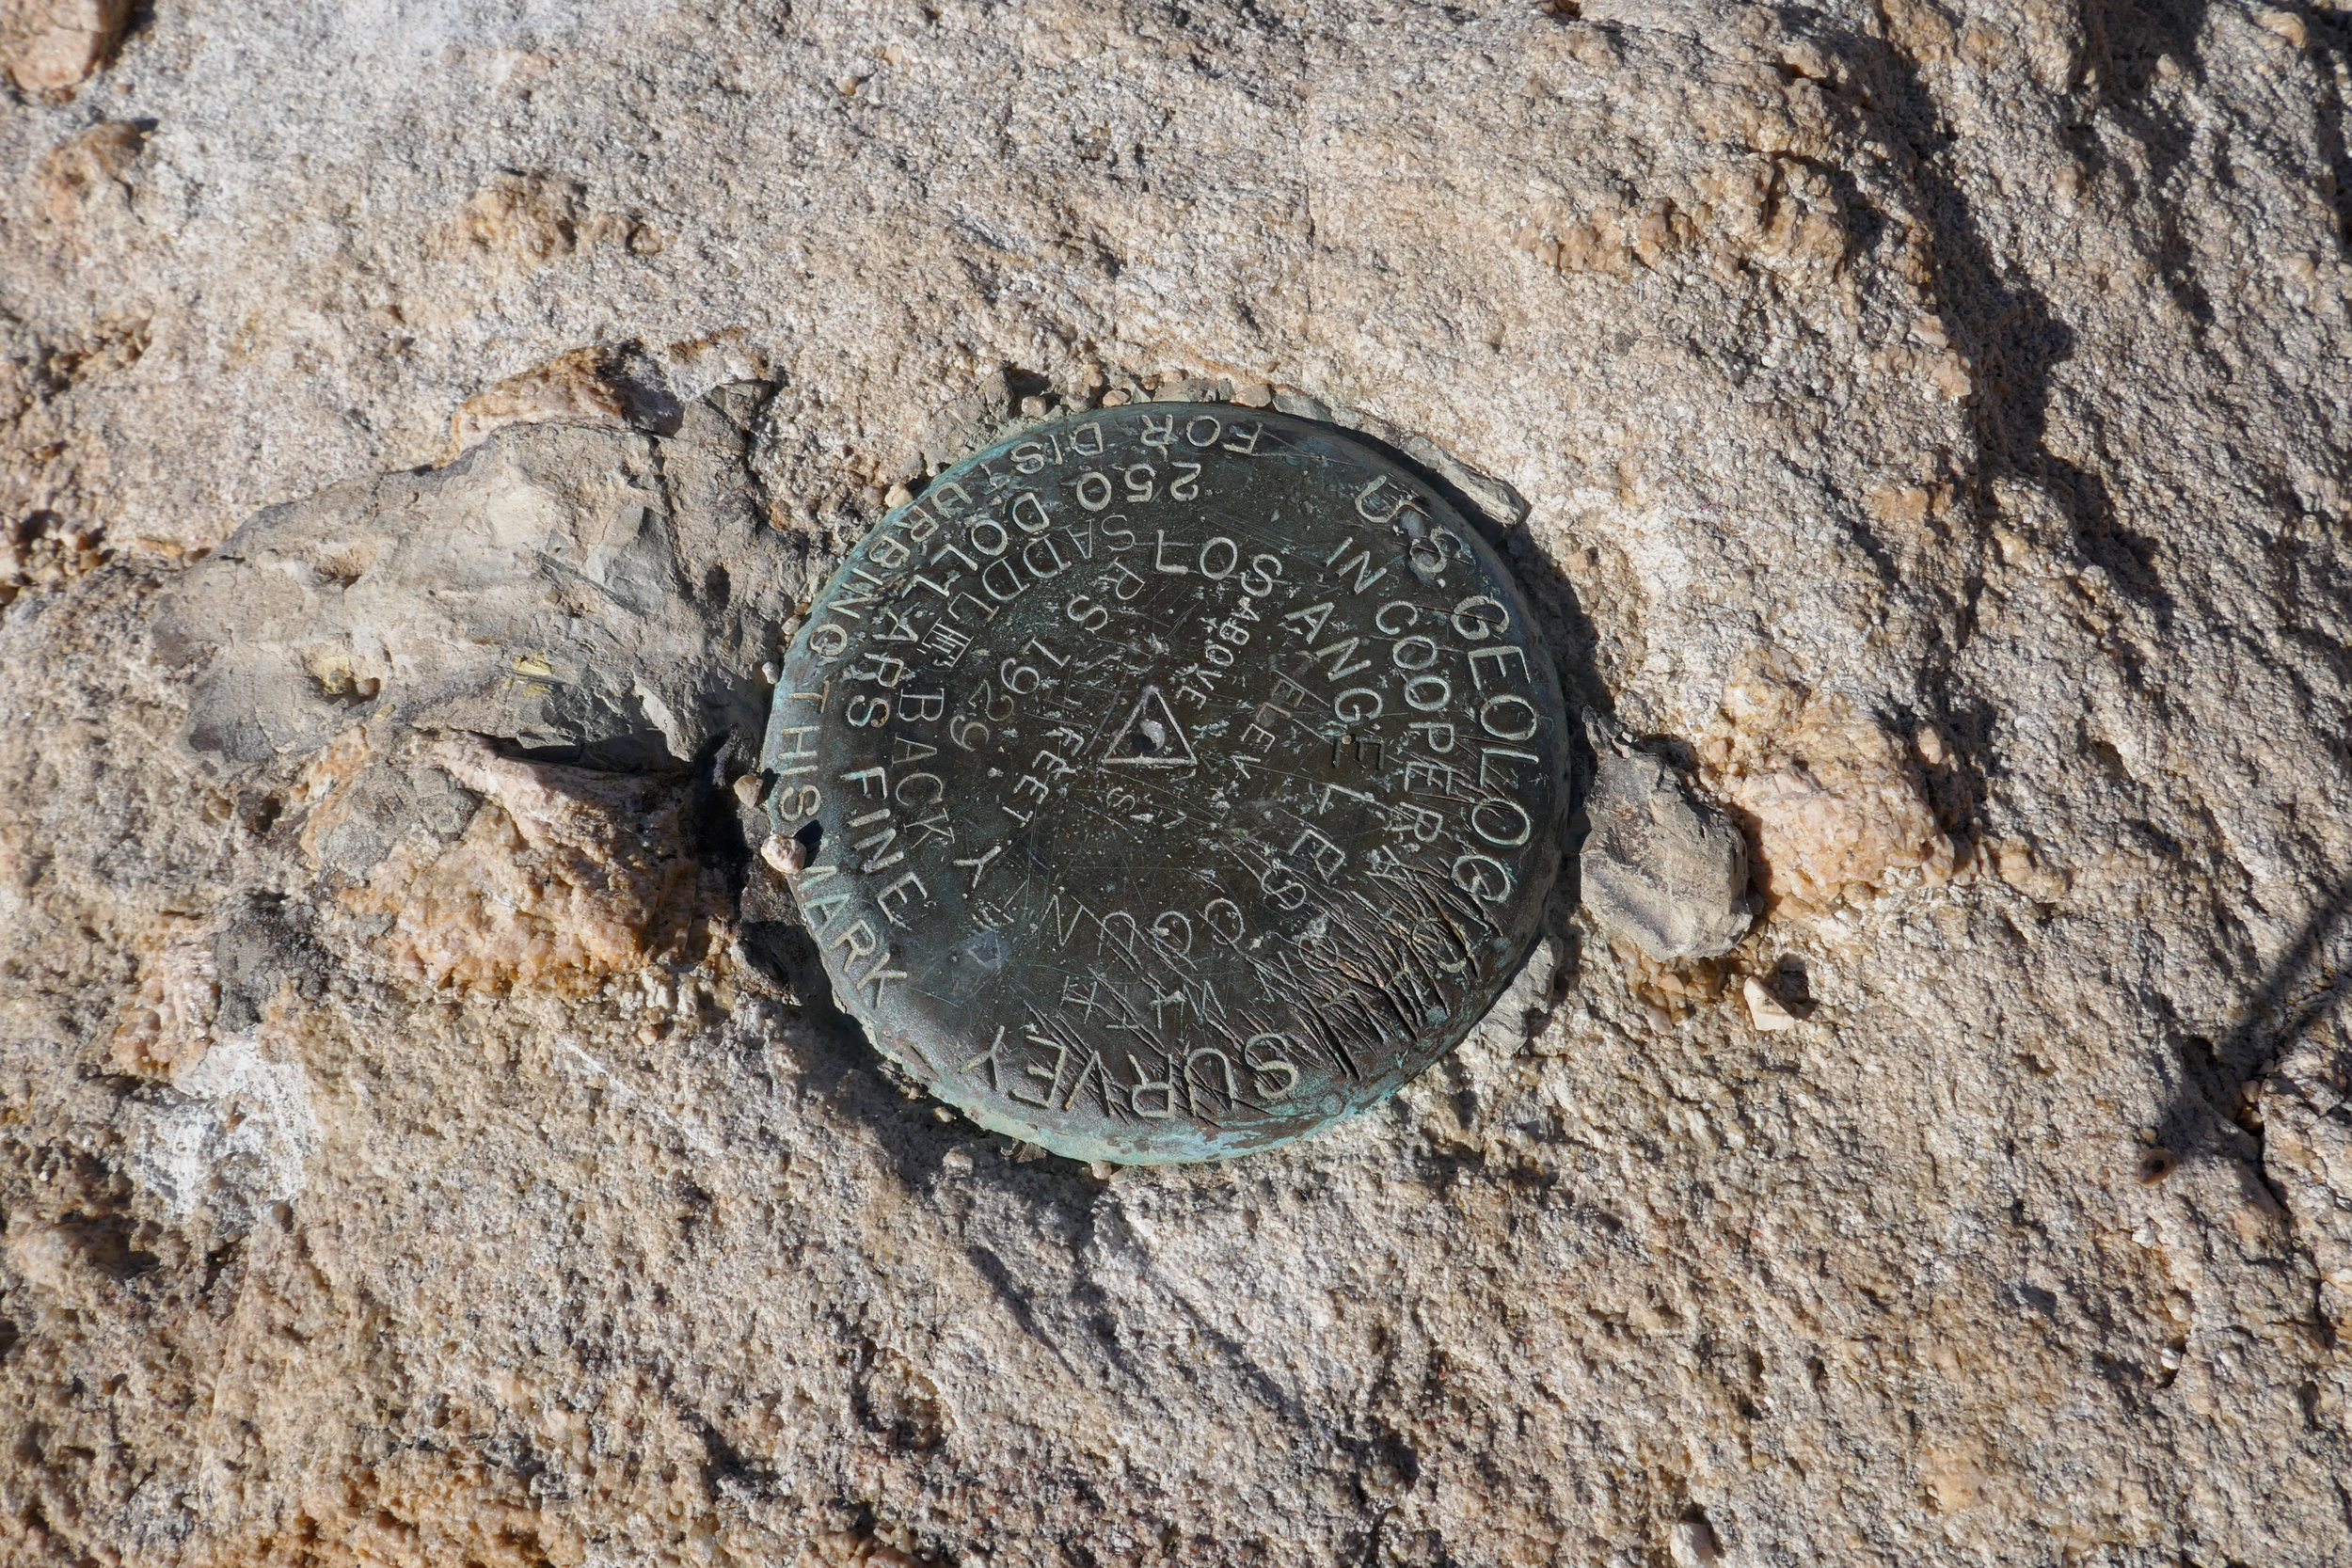 One of the two USGS markers at the peak.